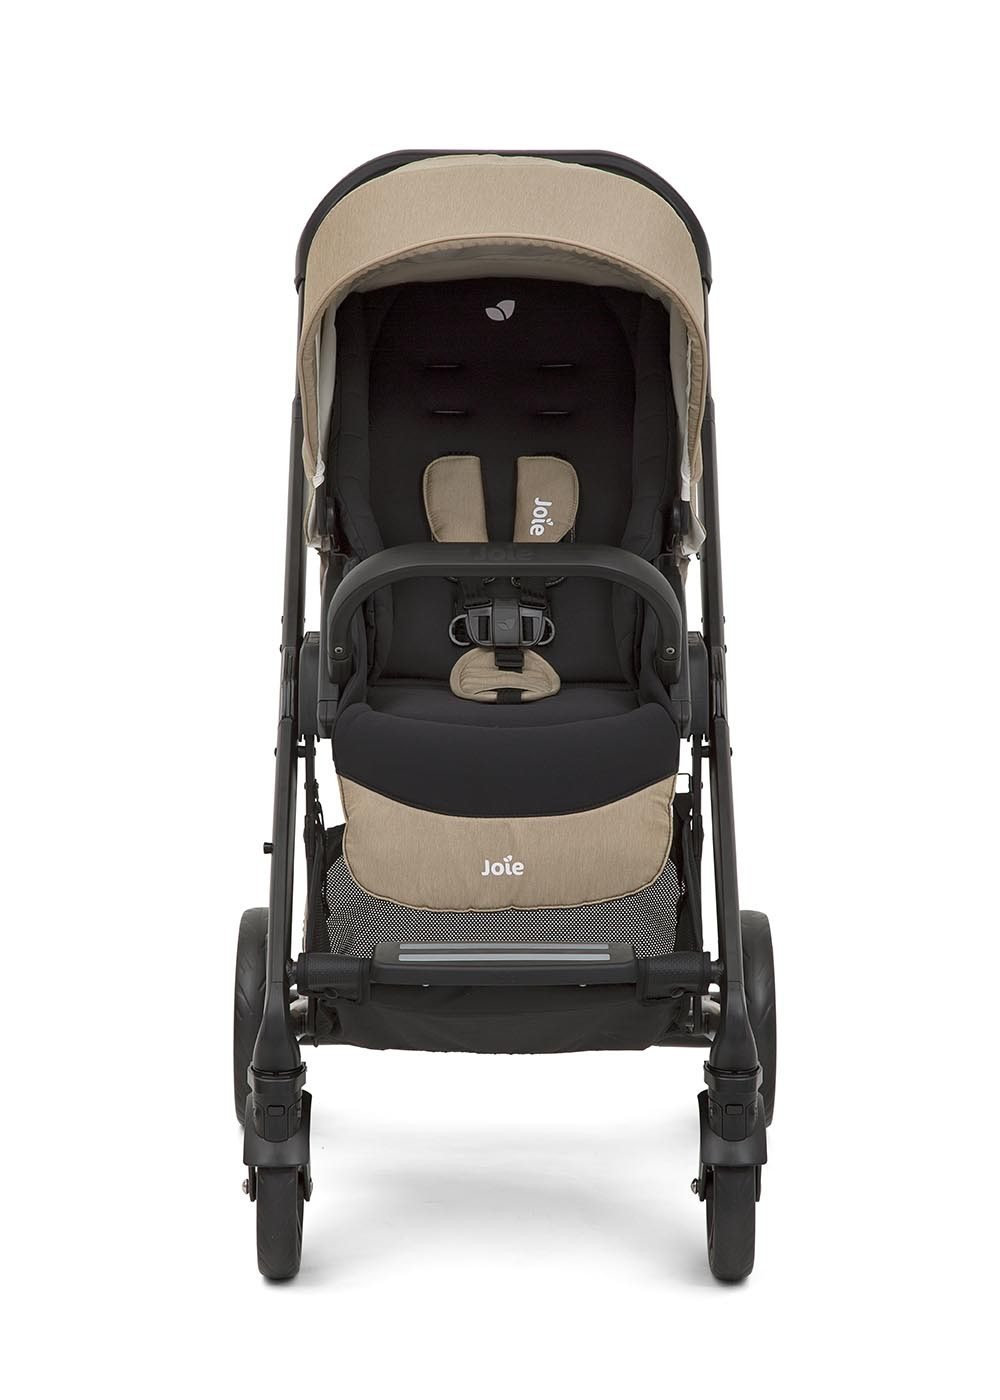 Joie Buggy Chrome Test Joie Chrome Baby Stroller With Reversible Seat Newborn Till